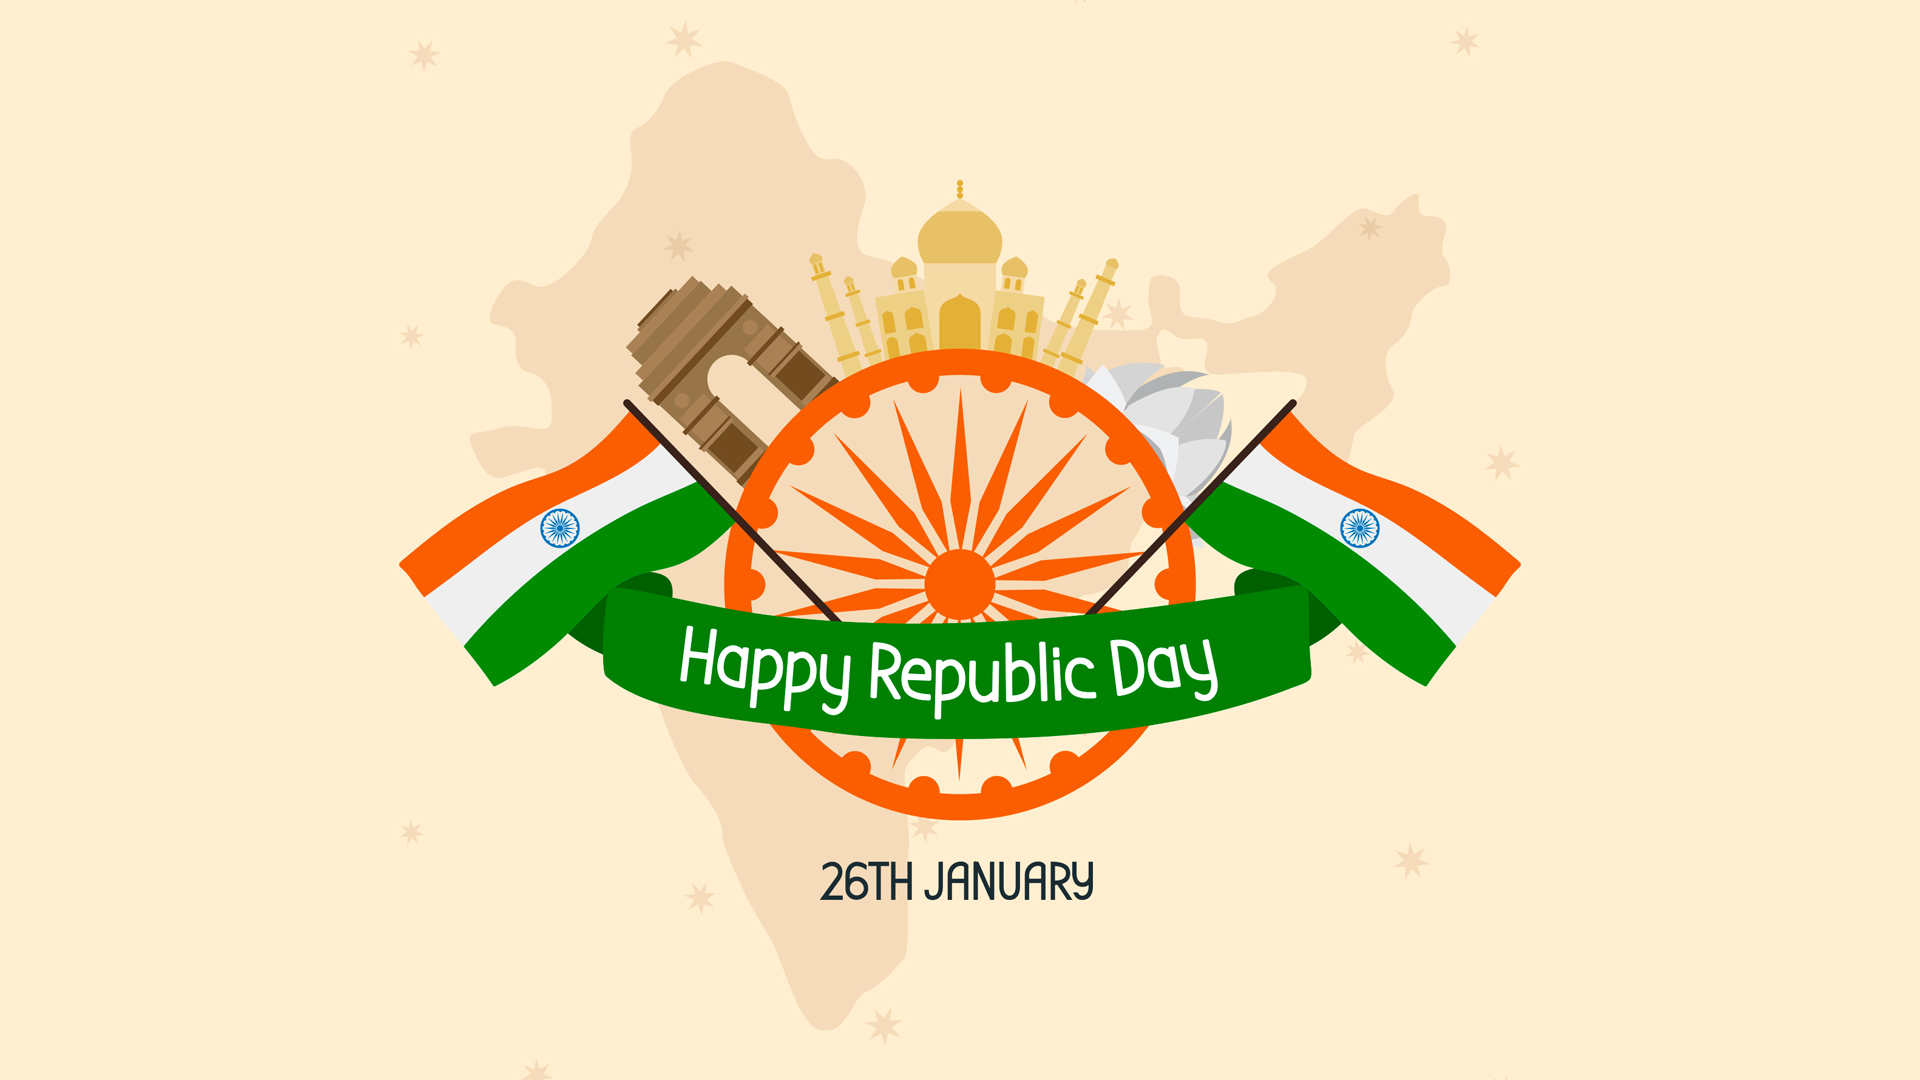 Happy Republic Day 2019 Wishes Messages In Advance Hd Photos